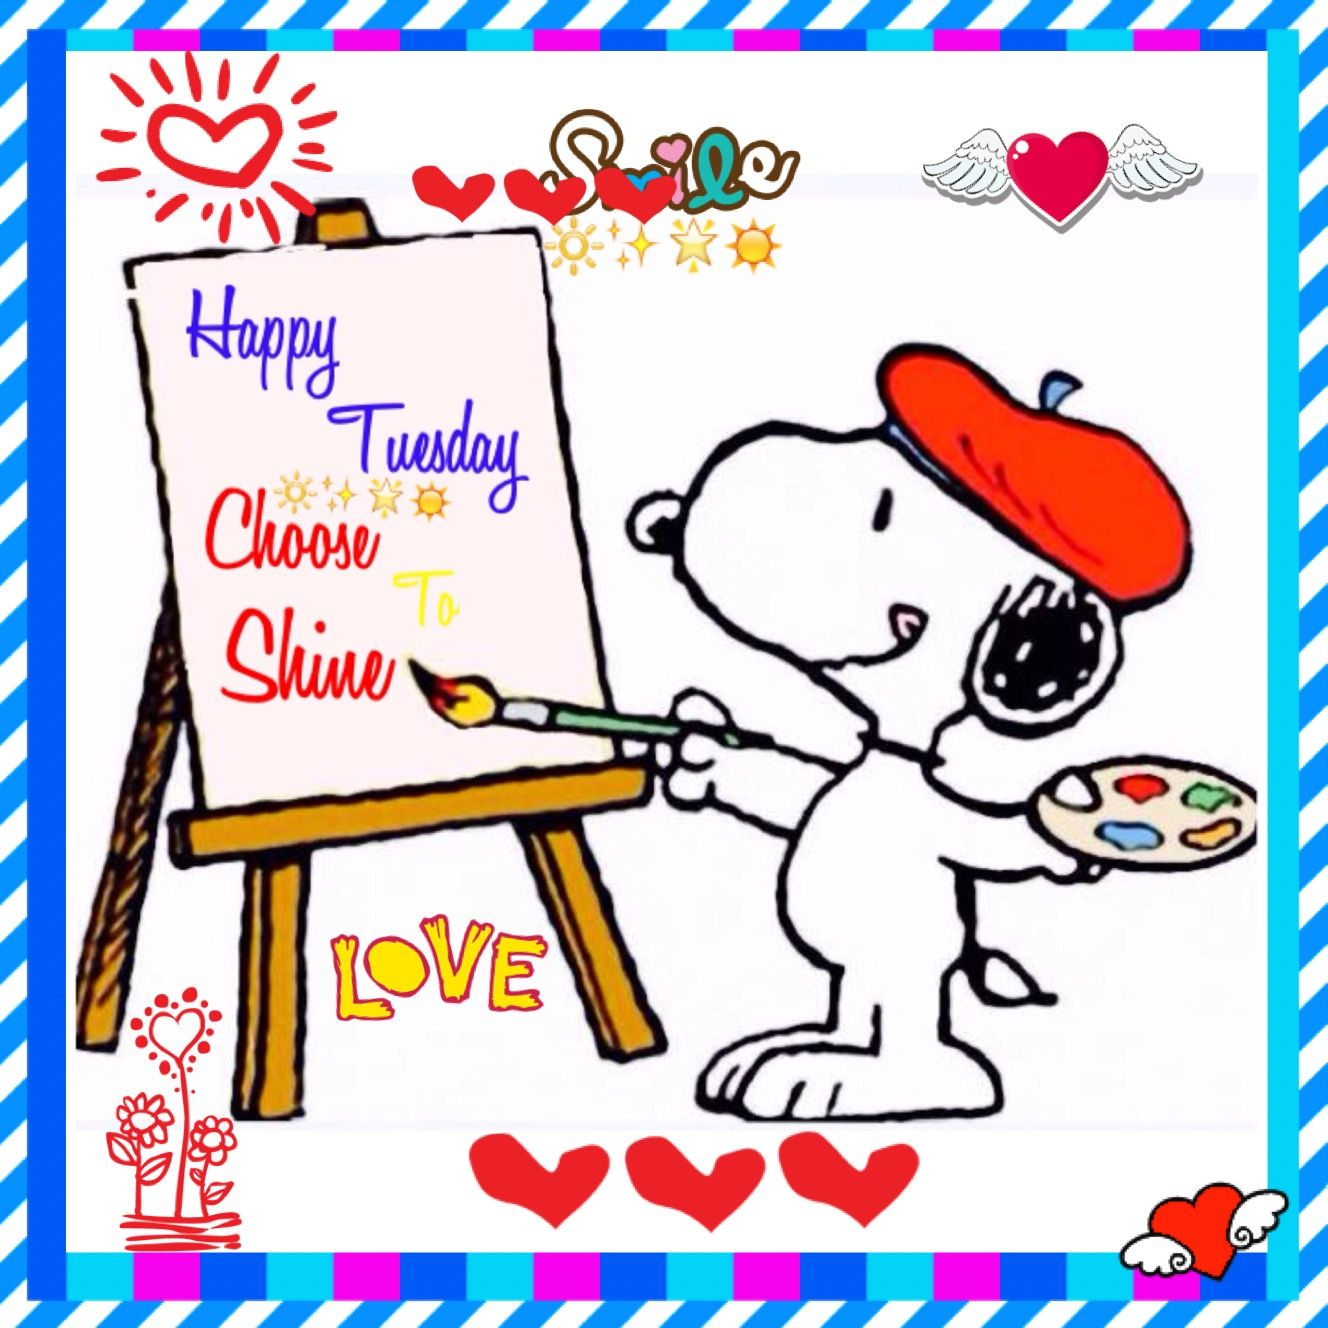 Tuesday | Snoopy love, Tuesday greetings, Happy tuesday